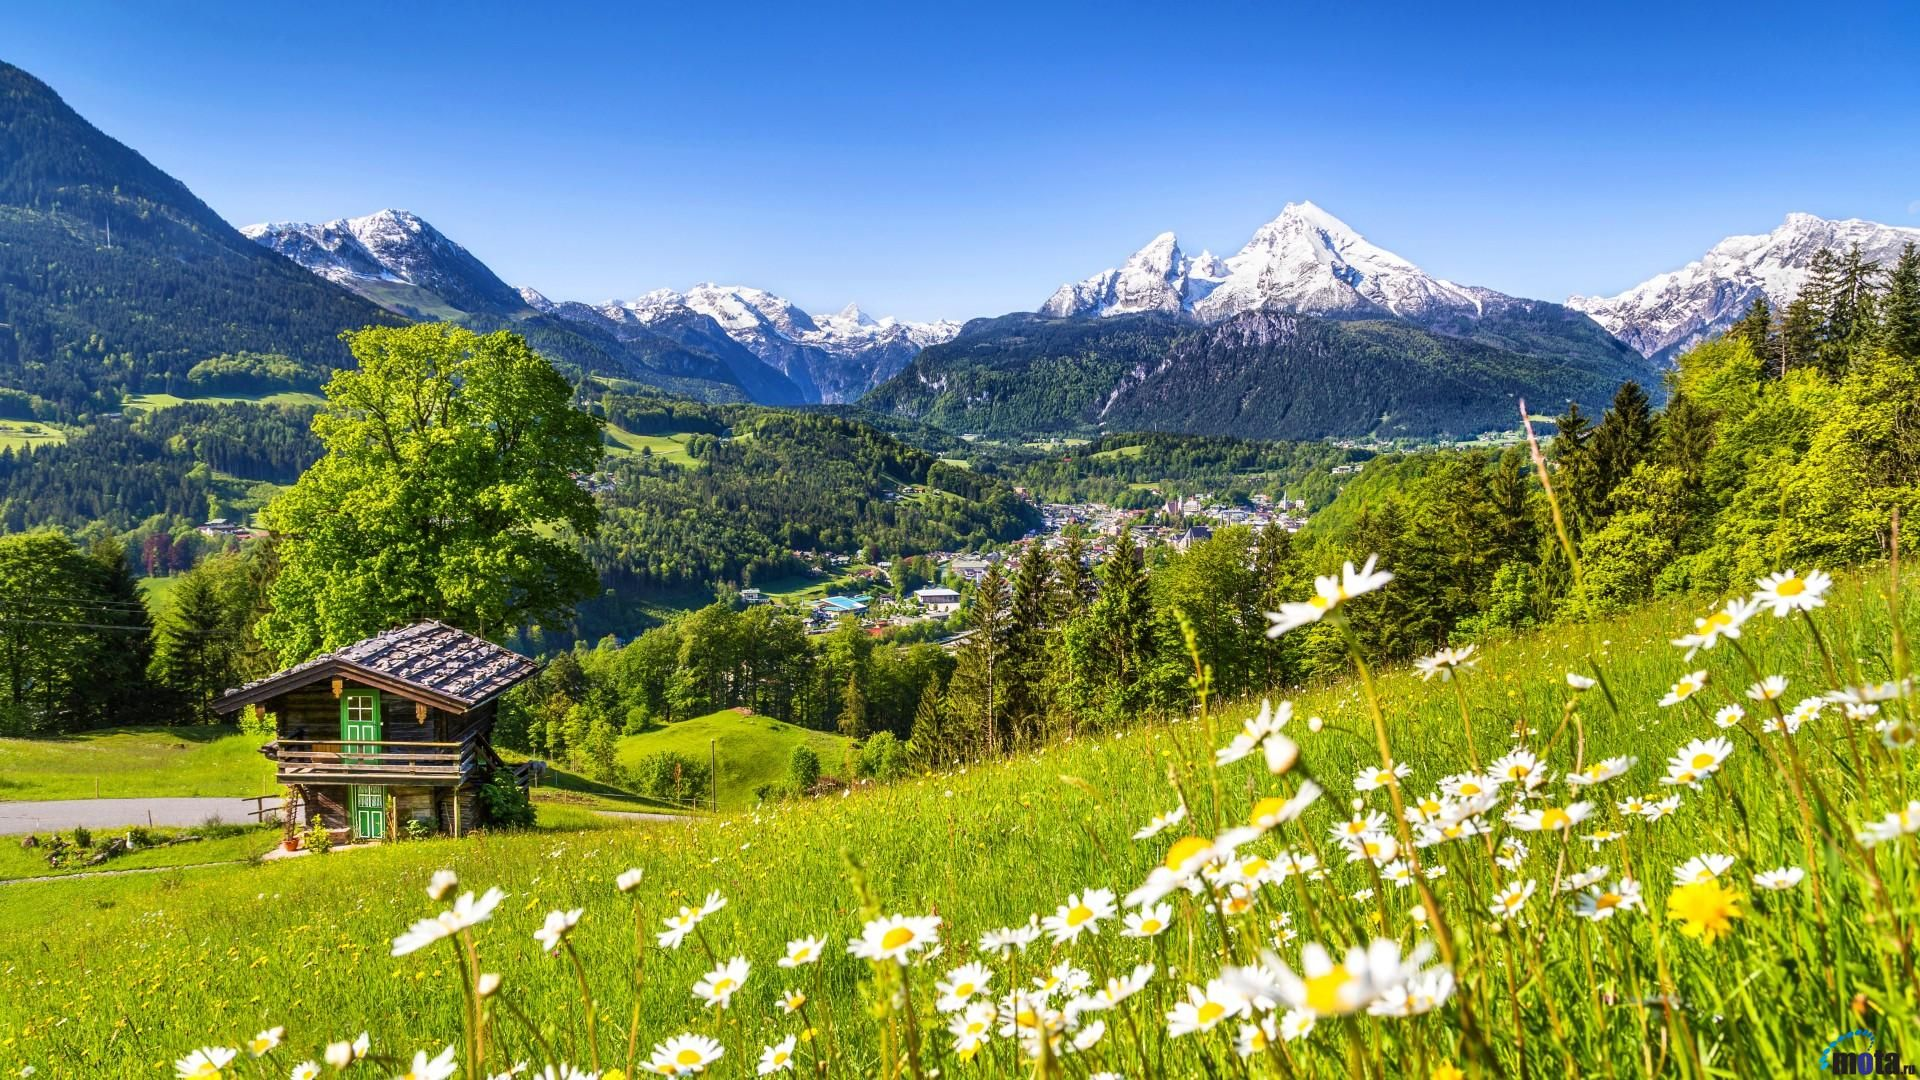 Nature Spring Mountain House Scenic Landscape Beautiful Places National Parks